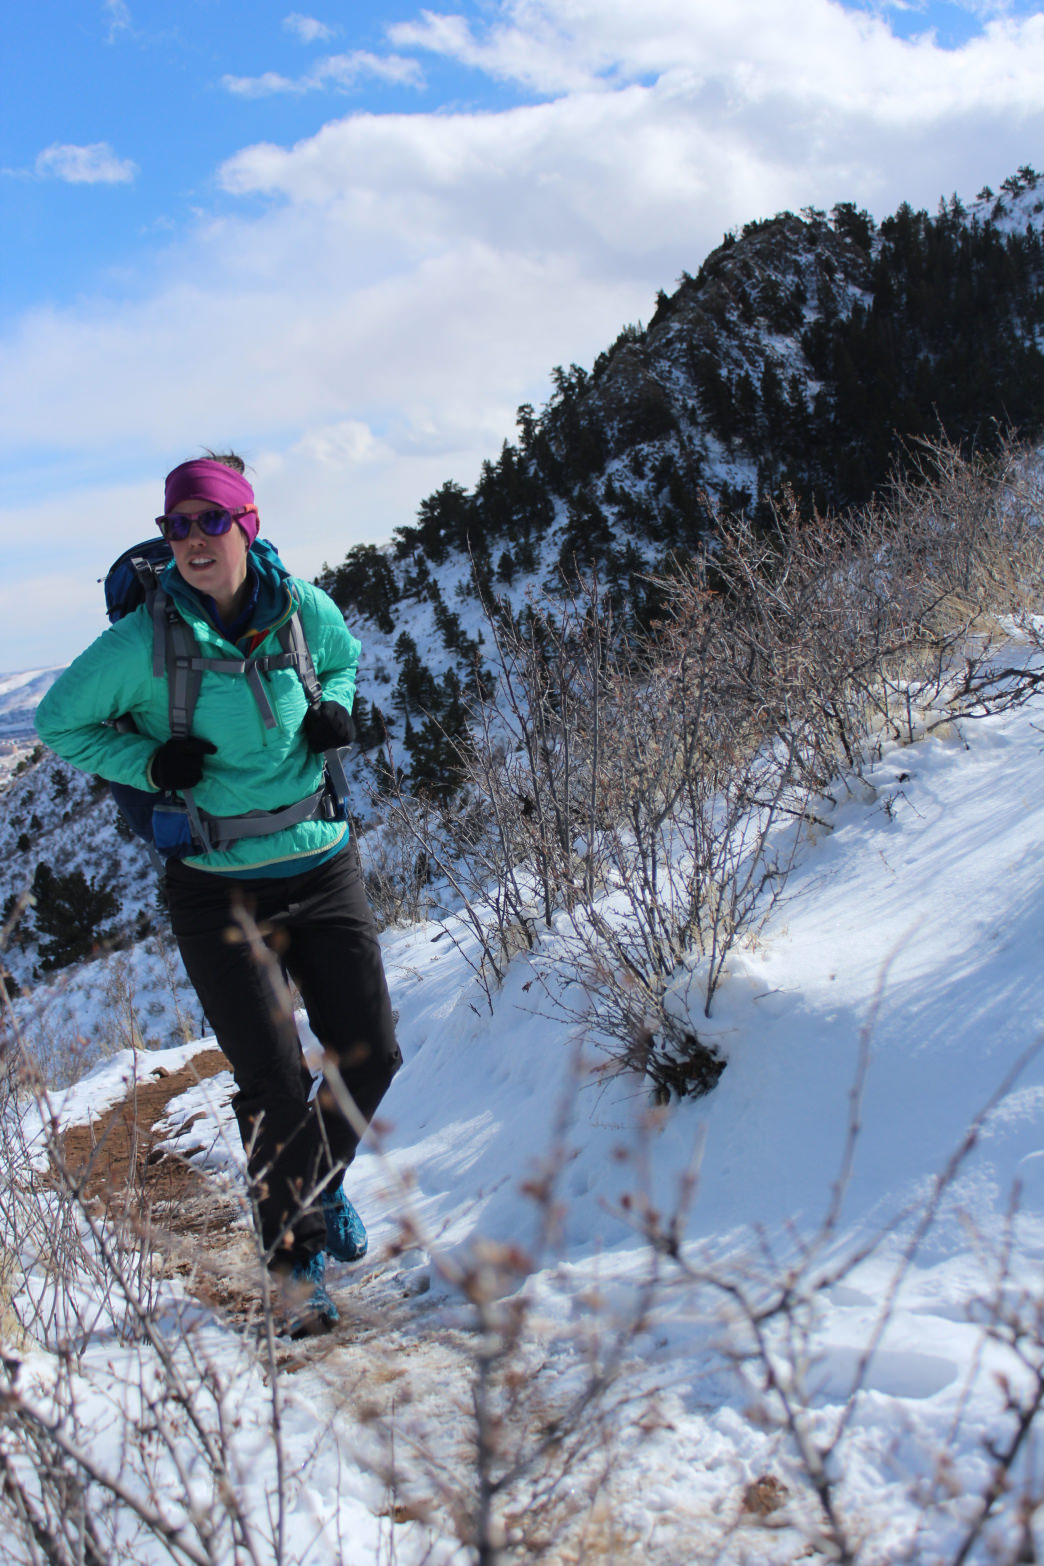 Hiking or skiing with an increasingly heavy pack is guaranteed to get you in tip-top shape.      Bix Firer